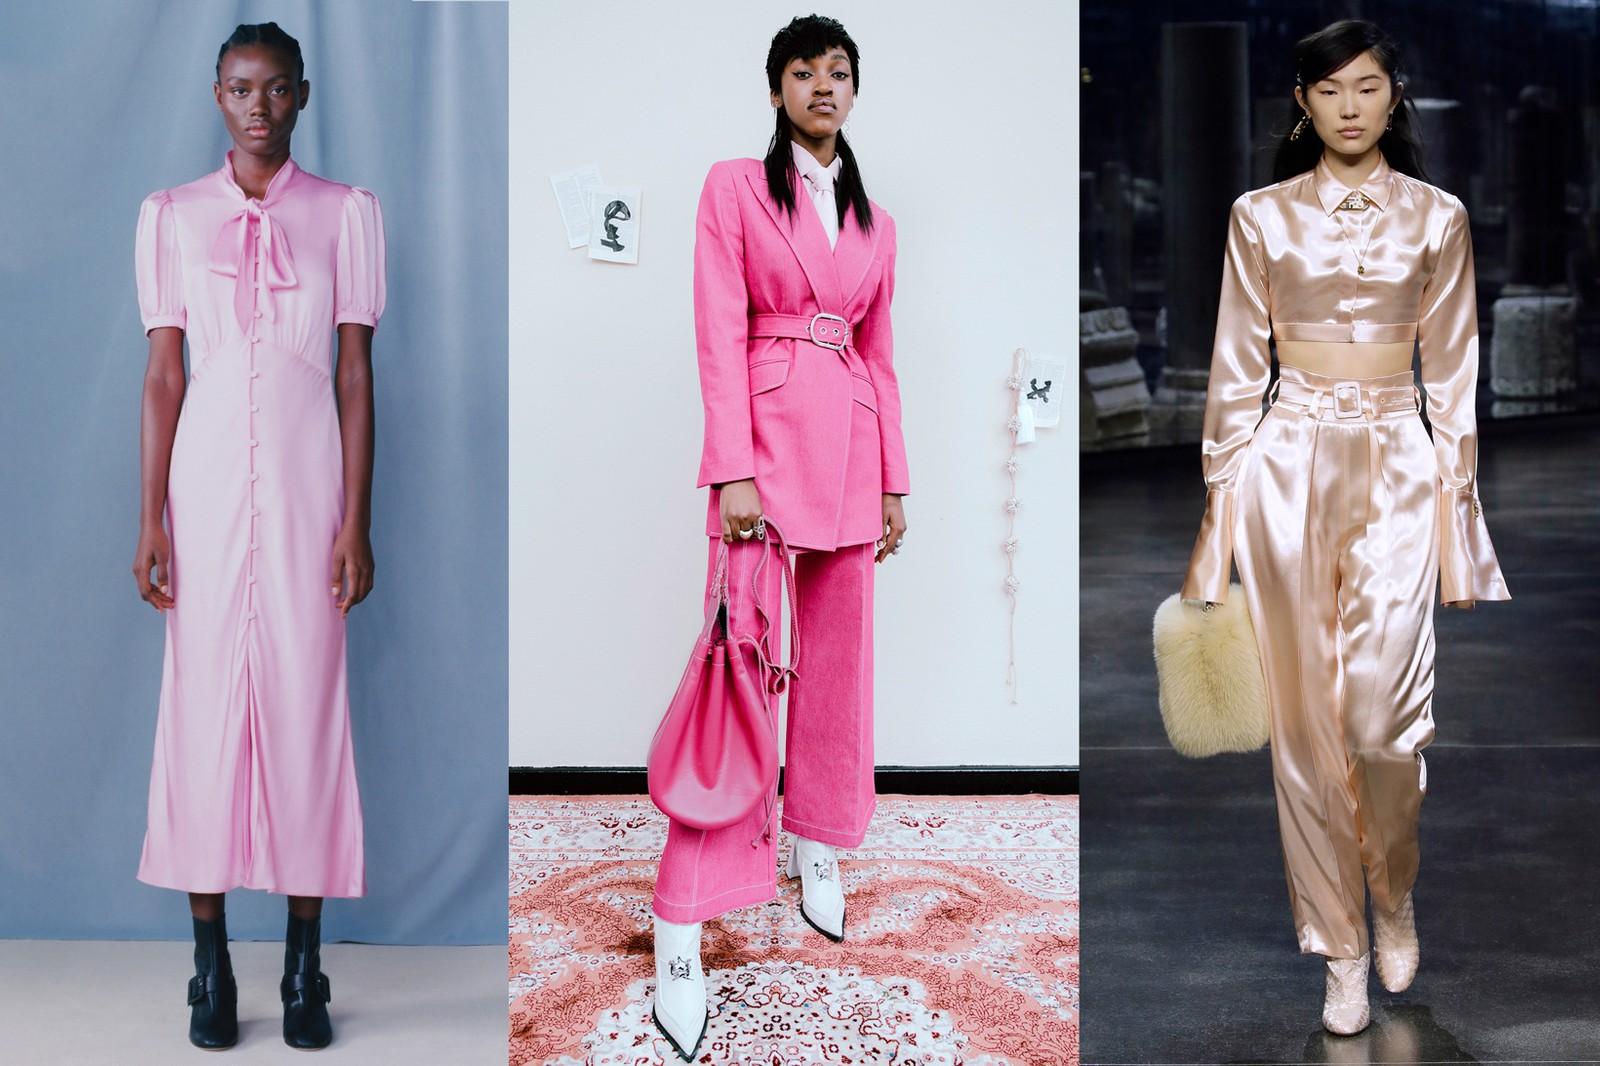 Miu Miu Proenza Schouler Sandy Liang Fall/Winter 2021